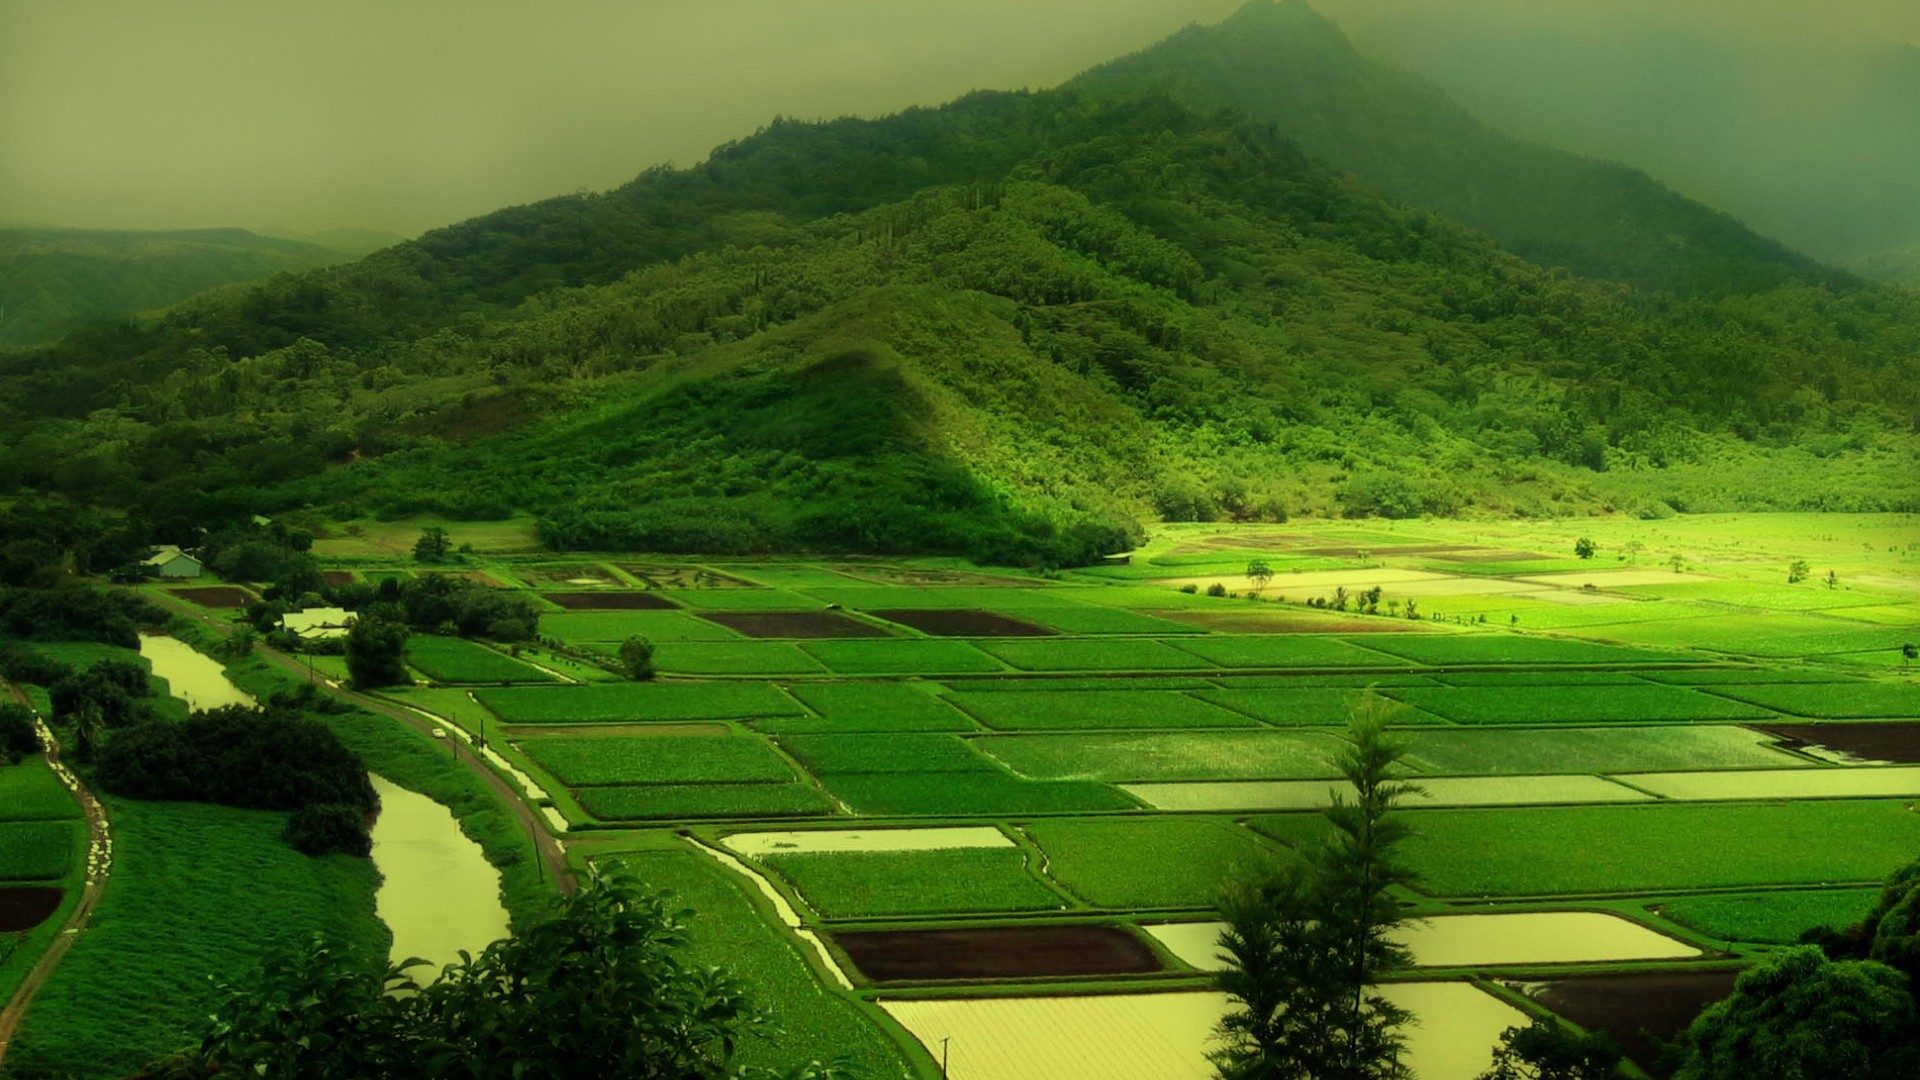 Mountains Landscapes Nature Green Field Rivers Farm